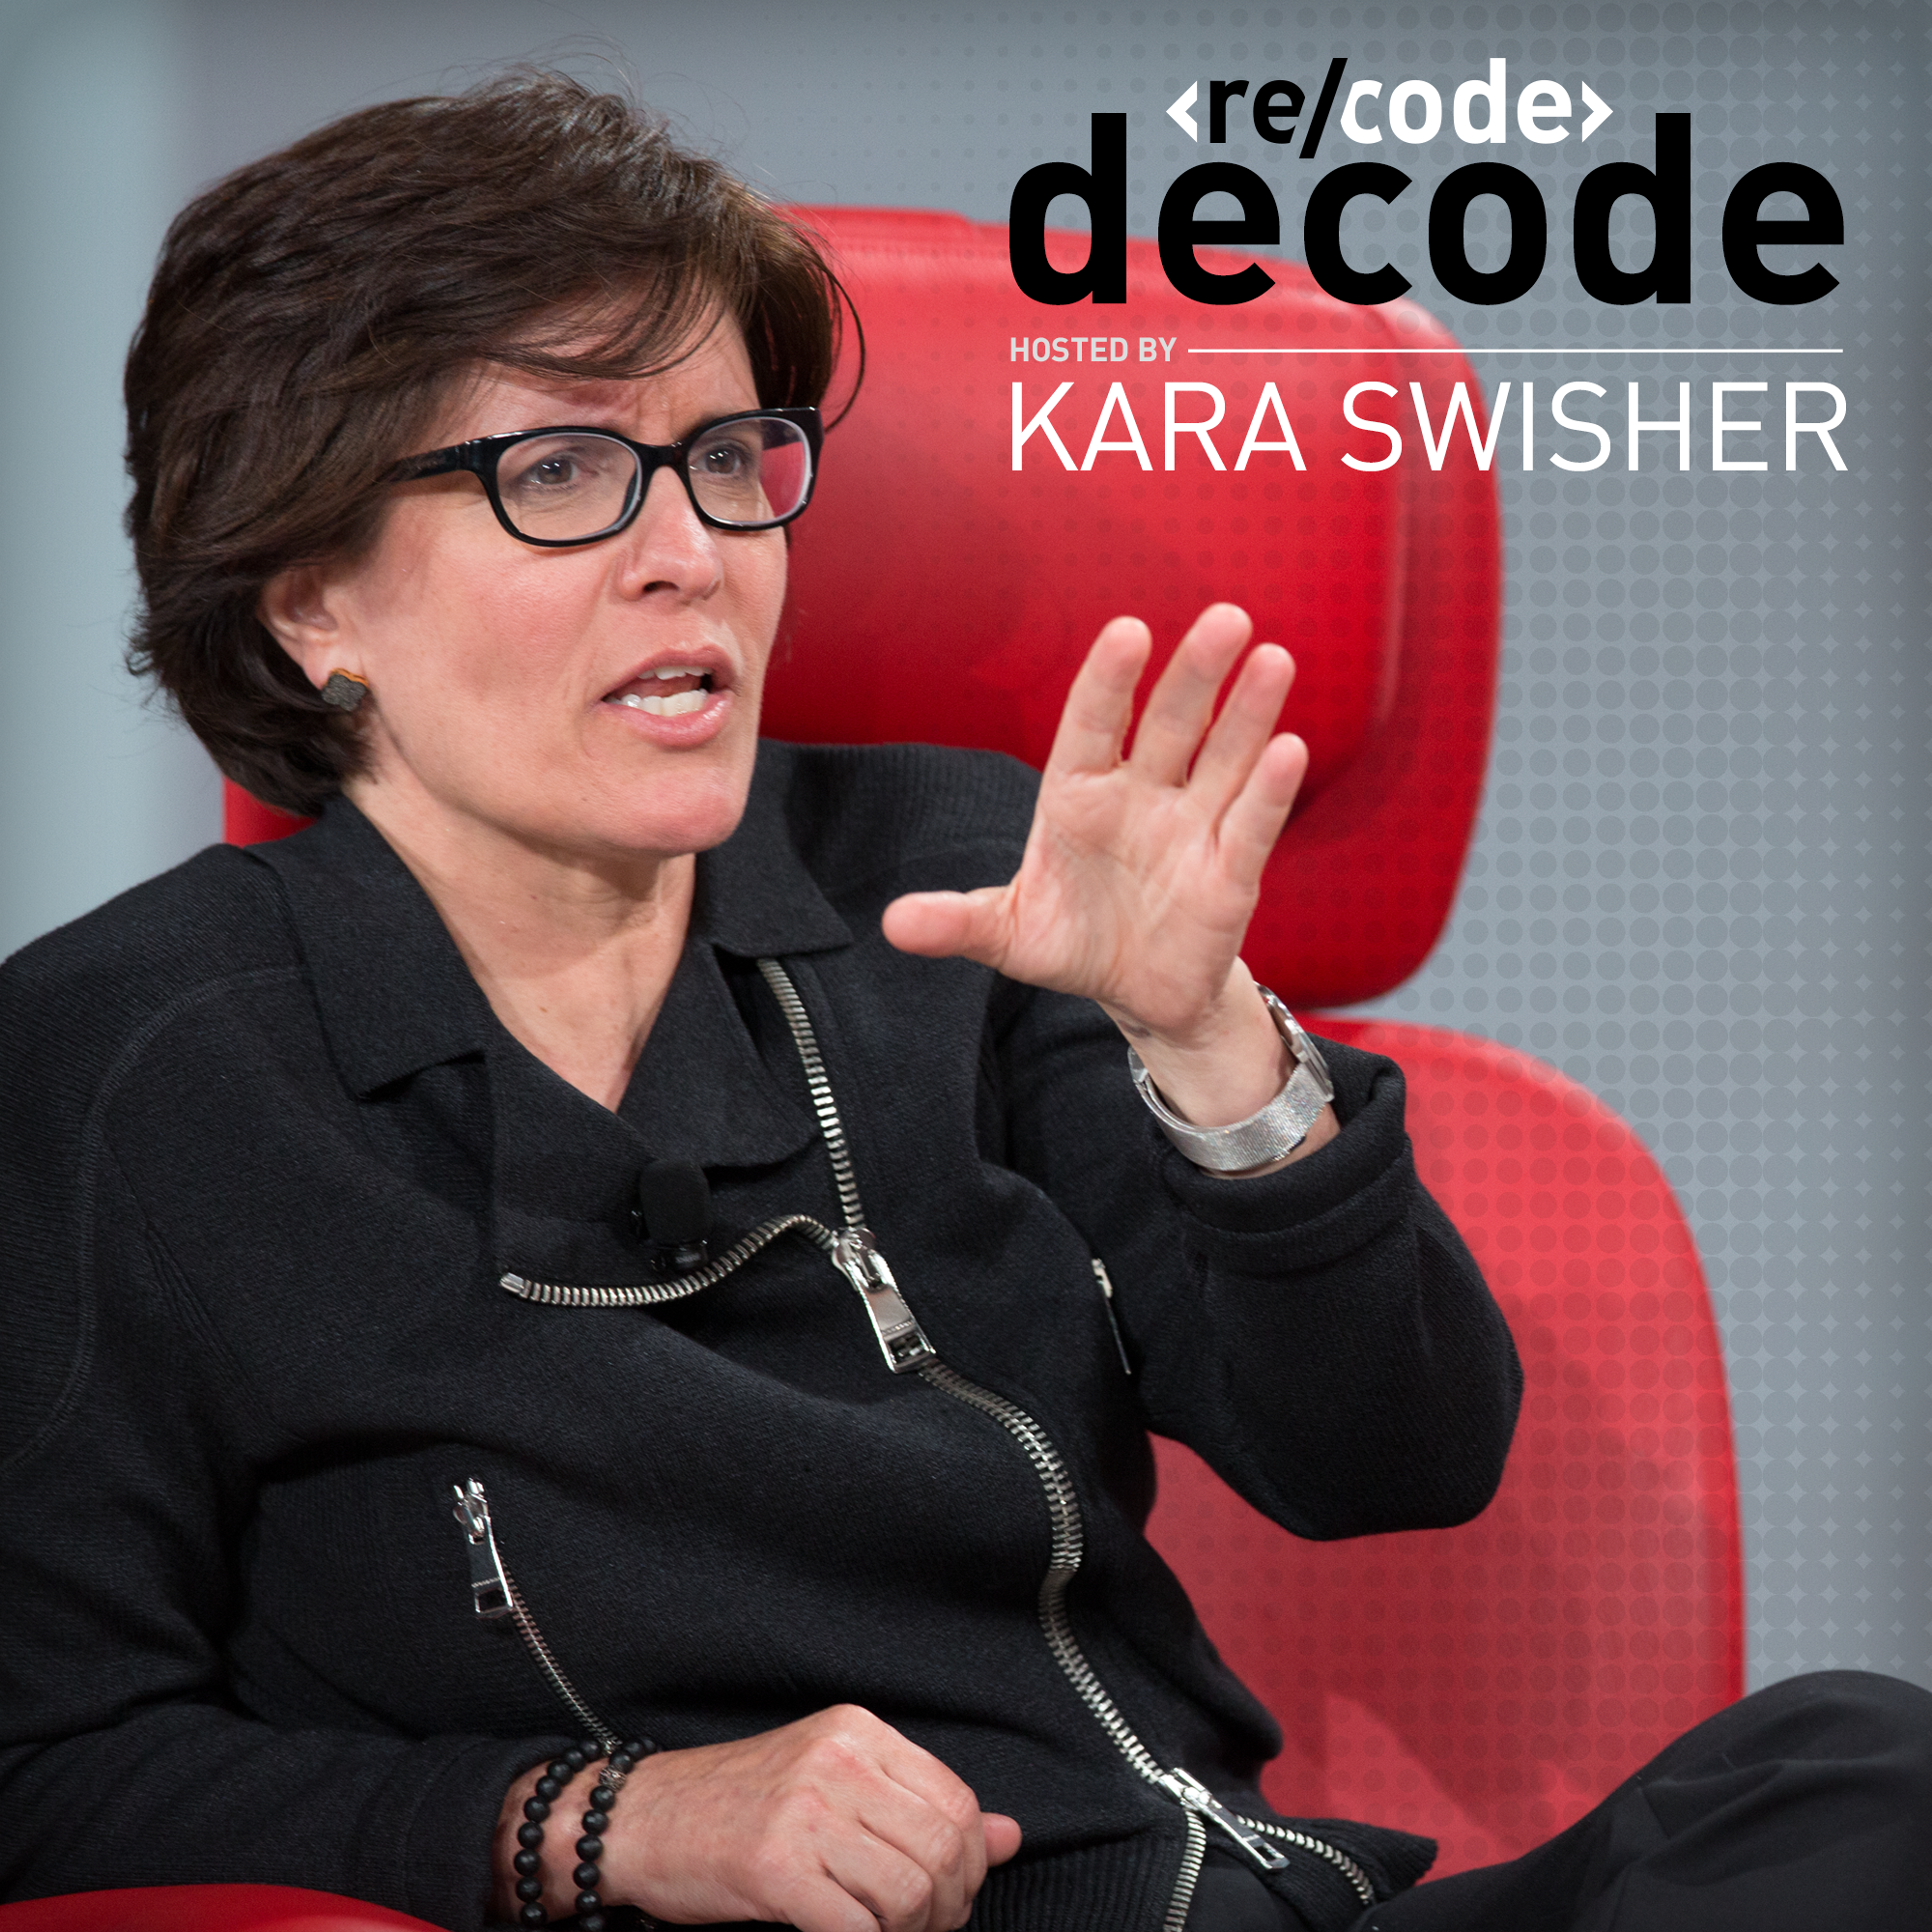 Re/code Decode, hosted by Kara Swisher